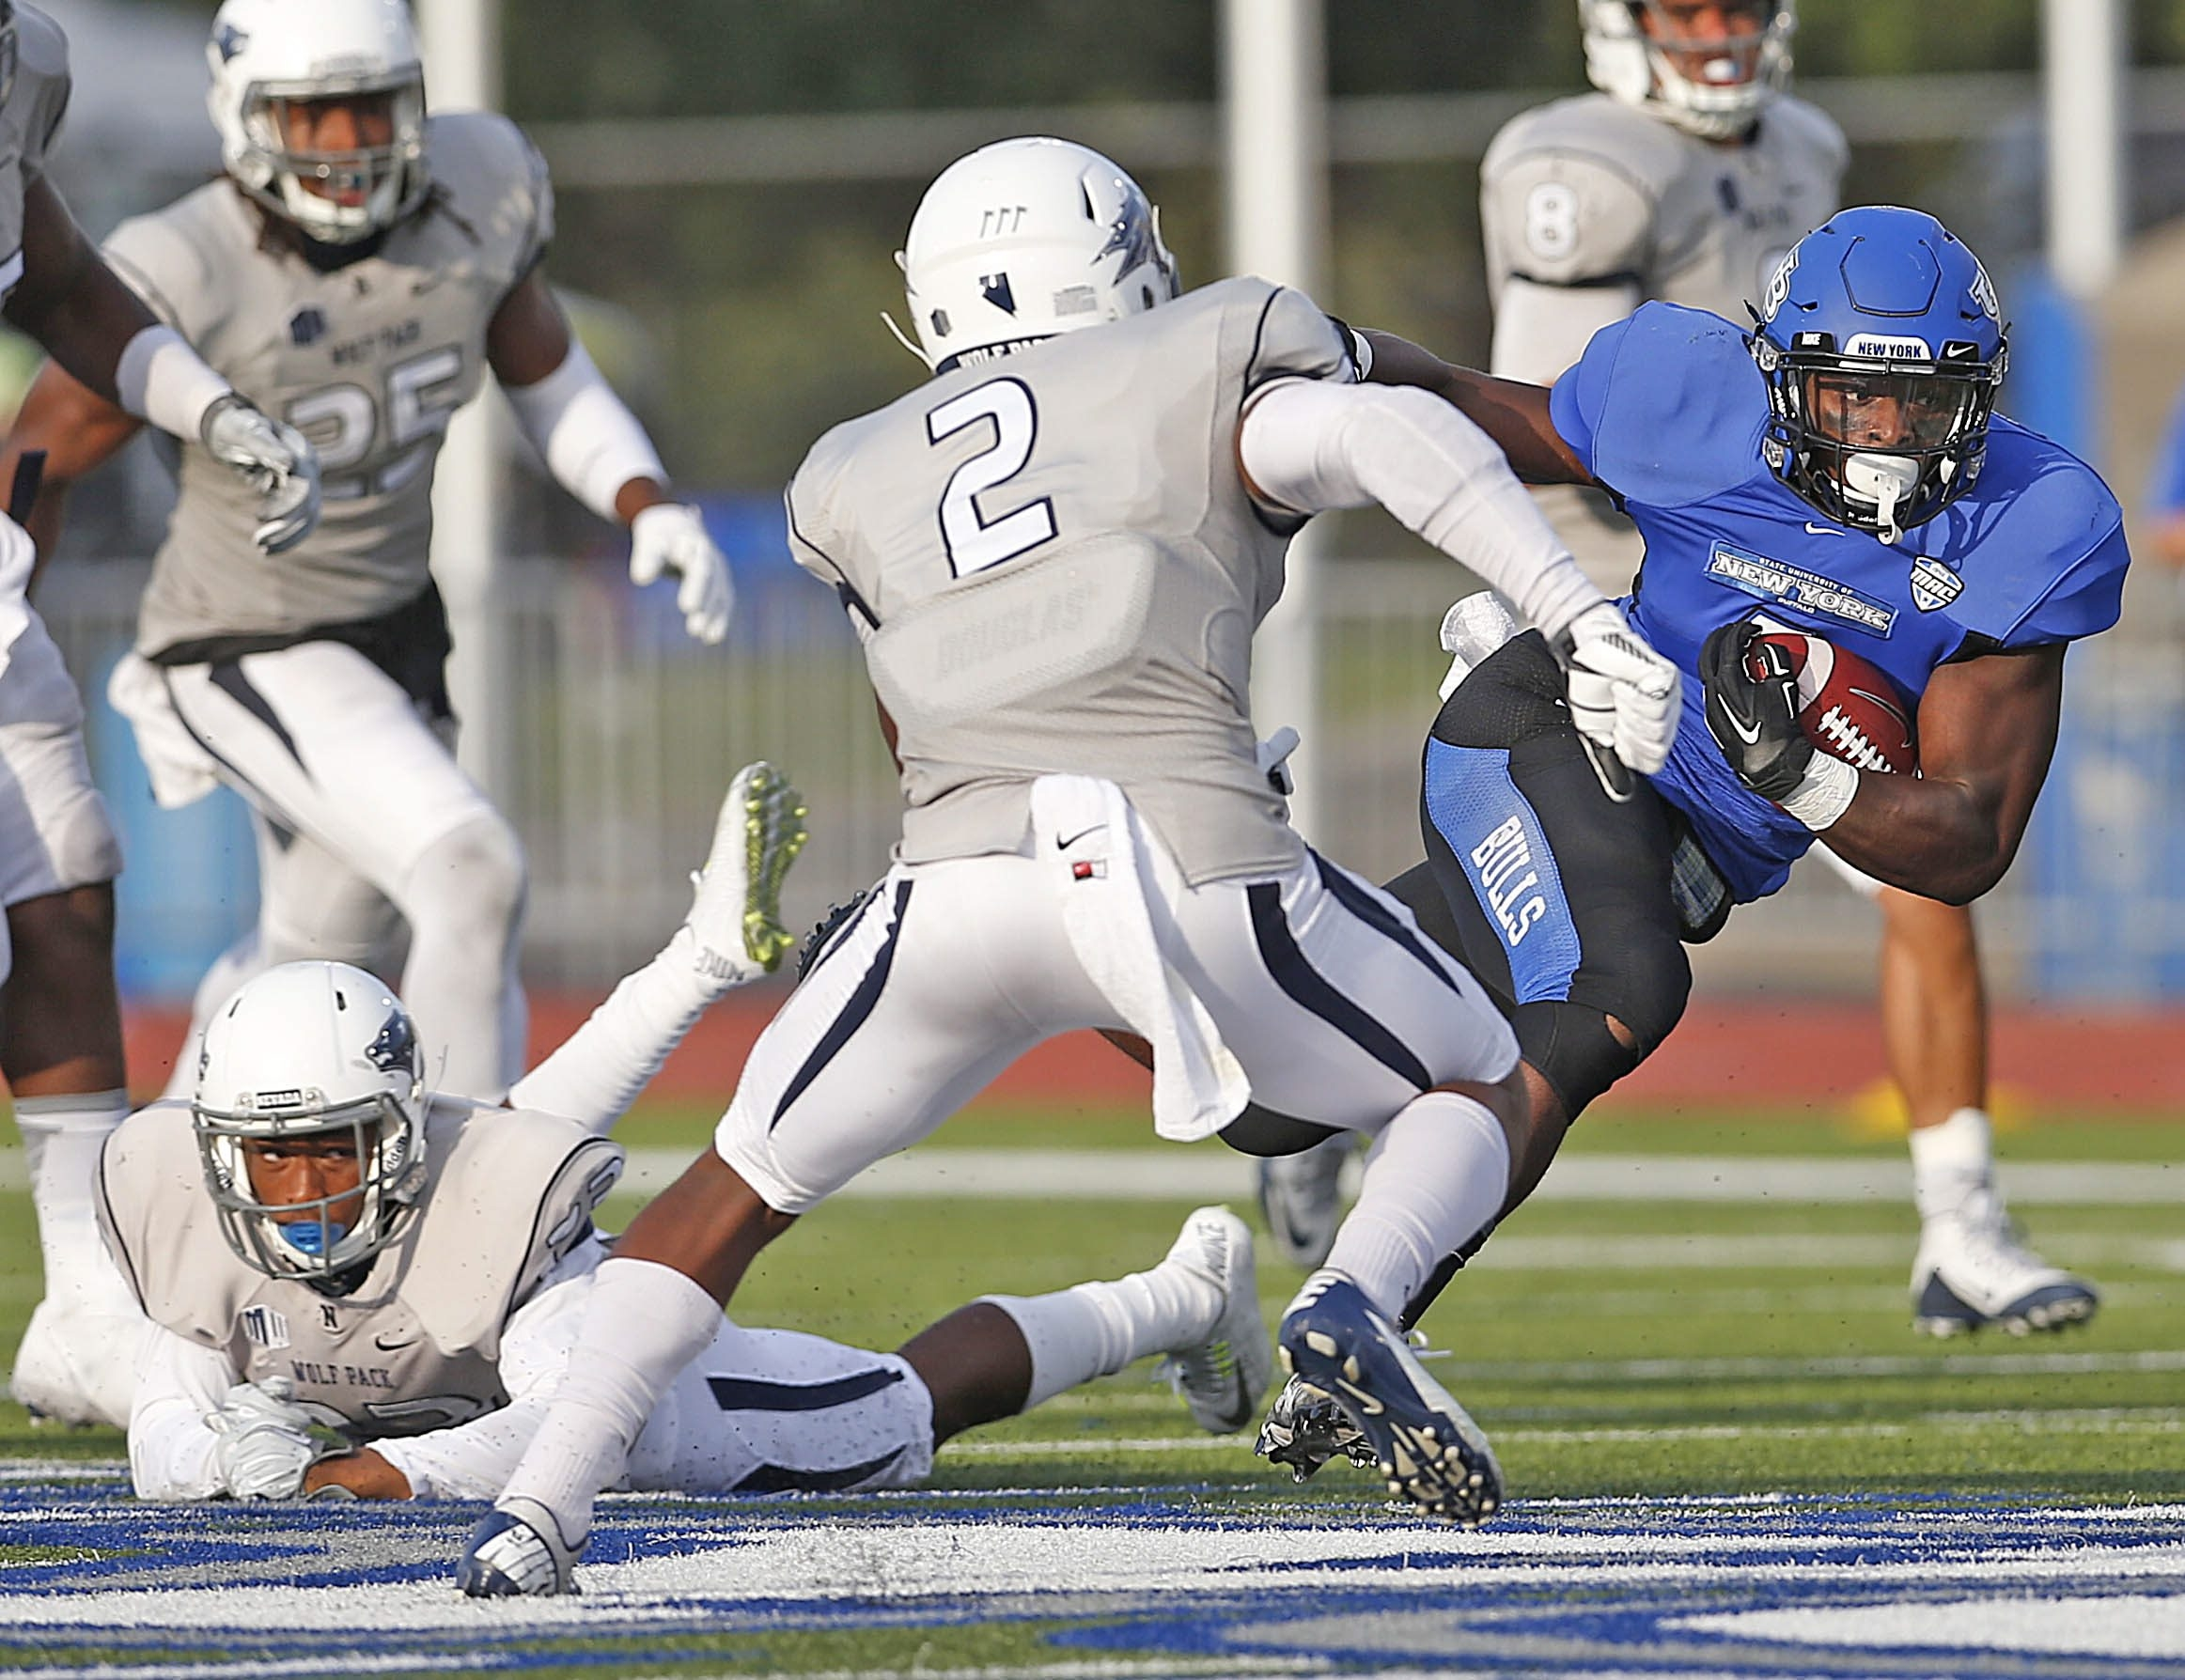 UB running back Jordan Johnson, a Sweet Home graduate, had a solid junior season. His 12 rushing touchdowns tied for third in the Mid-American Conference. (Robert Kirkham/Buffalo News)